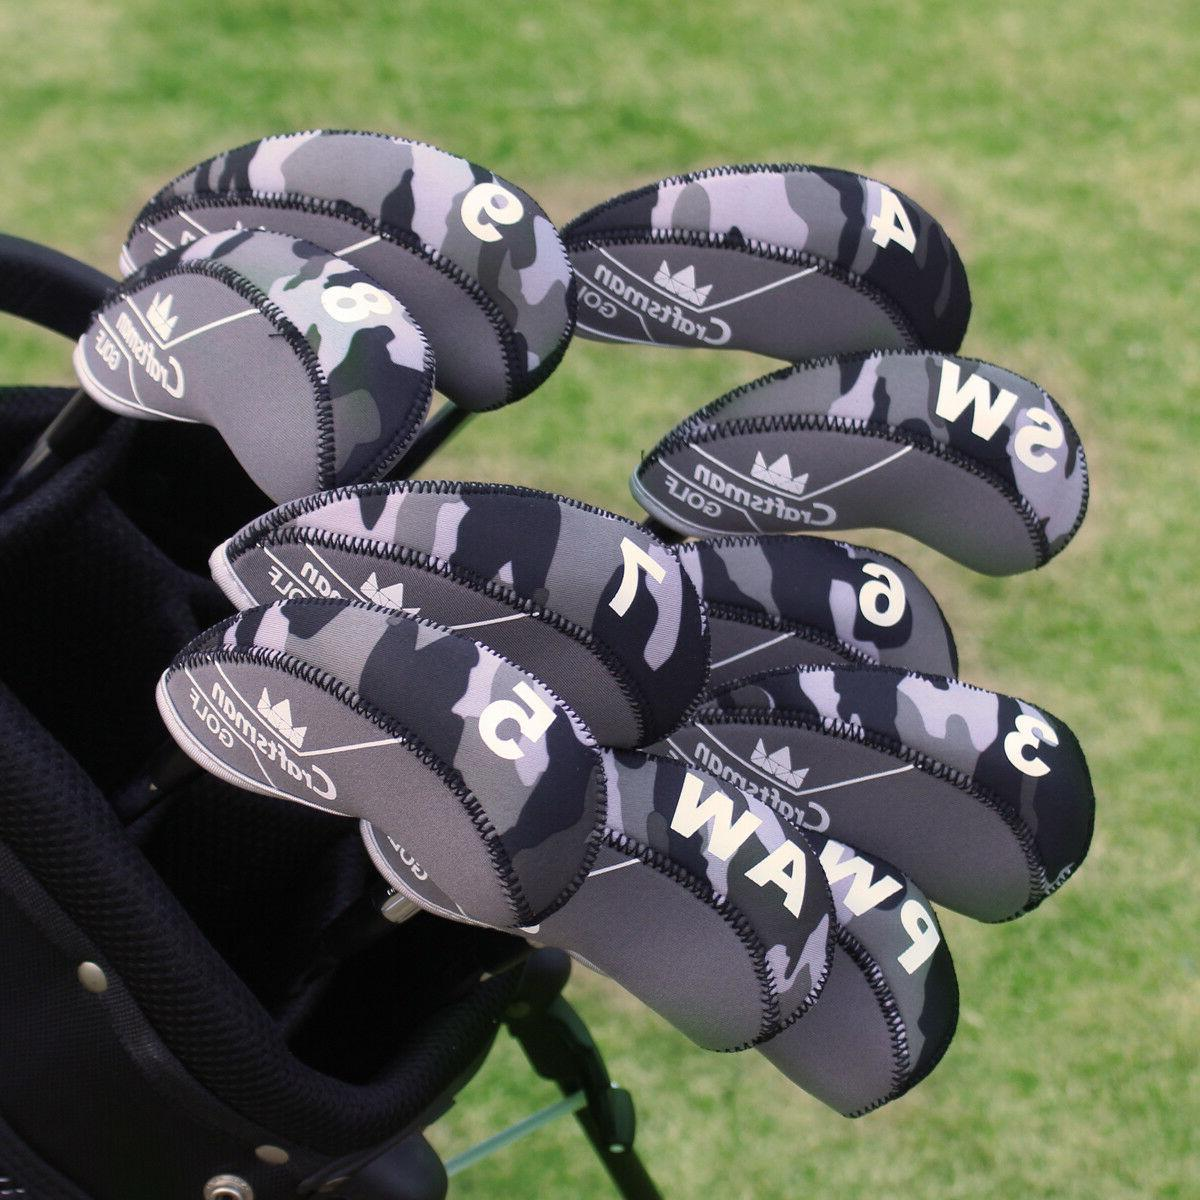 Army Covers Headcovers PXG Taylormade